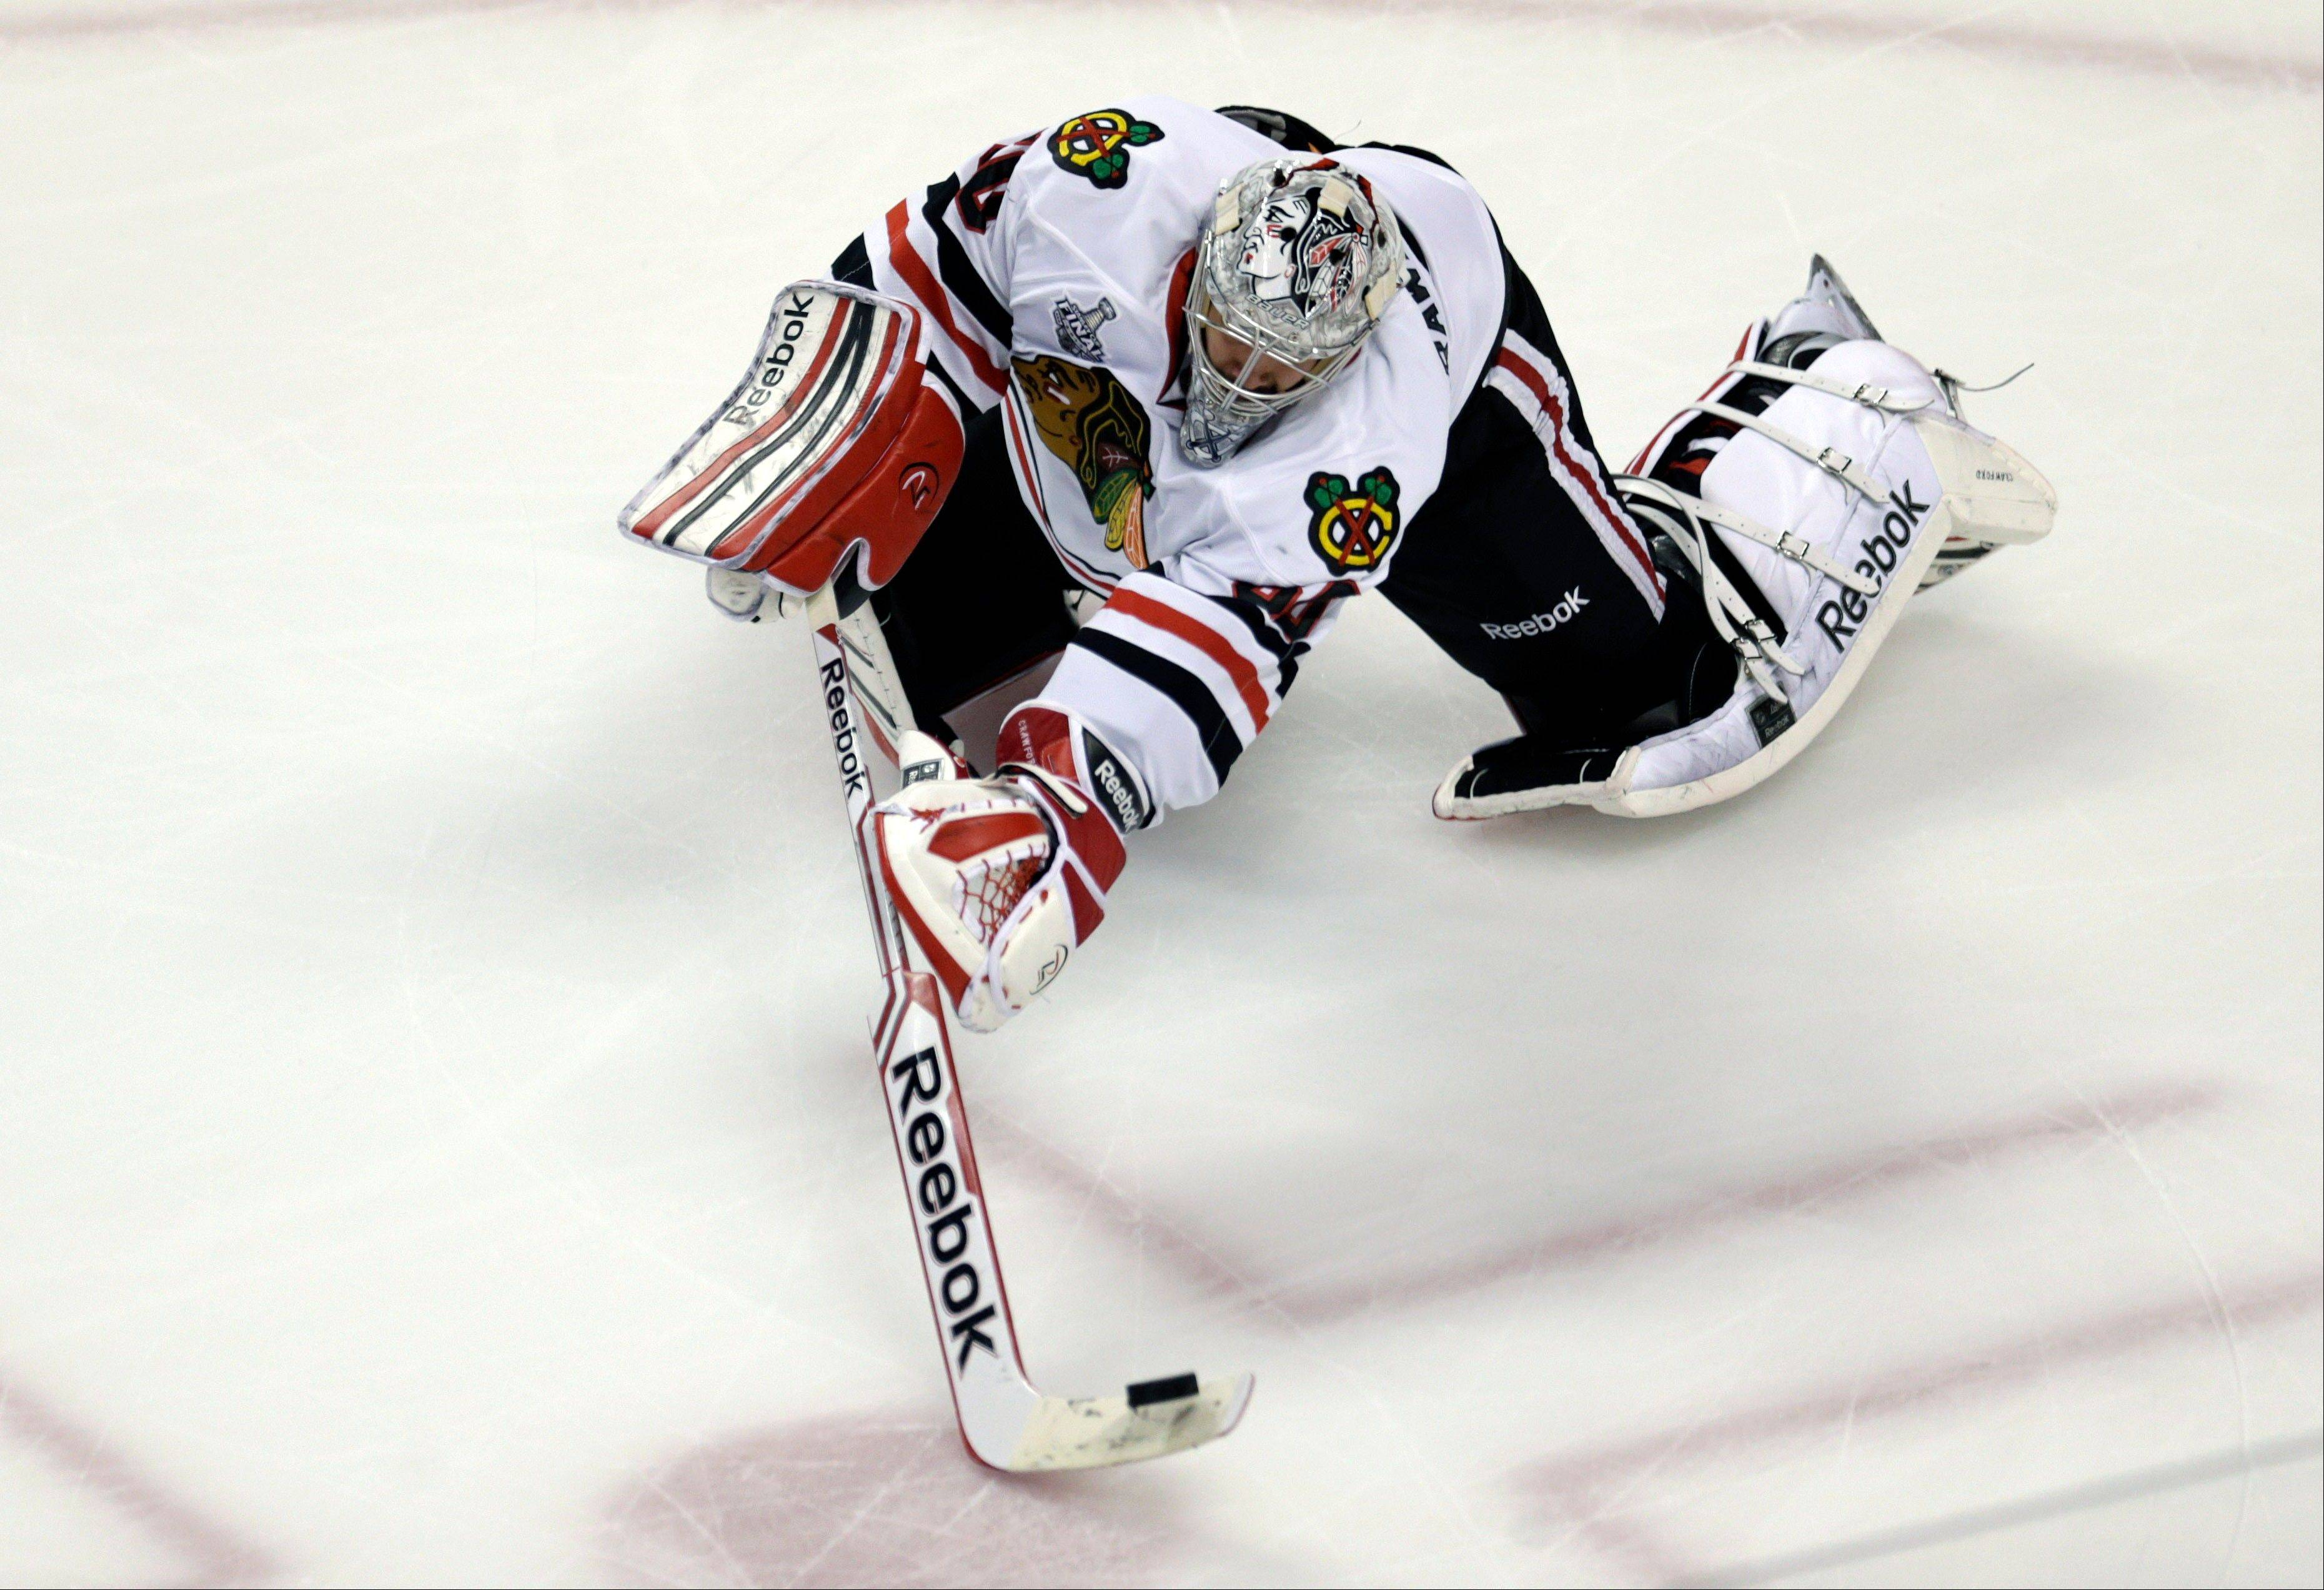 Chicago Blackhawks goalie Corey Crawford clears the puck against the Boston Bruins during the first period in Game 3 of the NHL hockey Stanley Cup Finals.